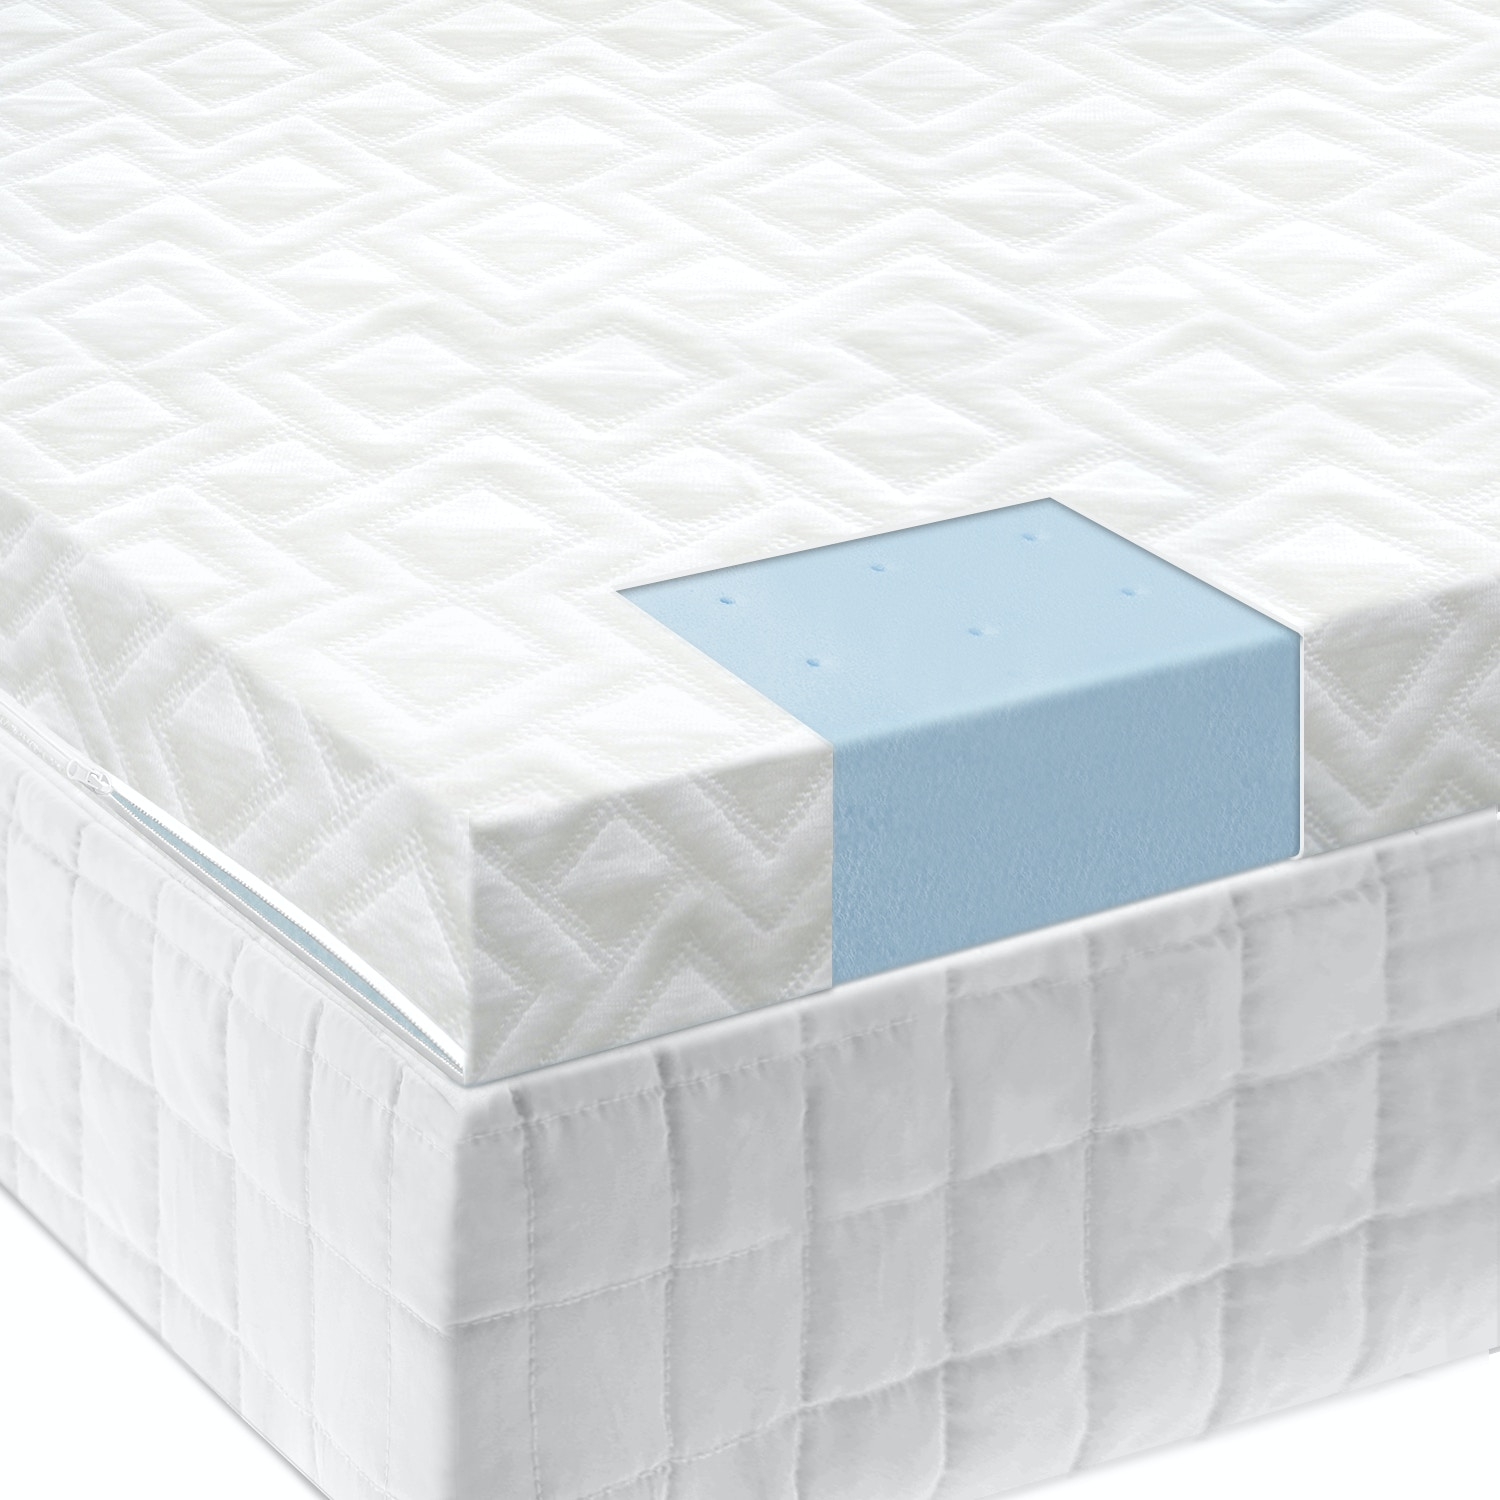 Malouf Living Room 2 5 Gel Memory Foam Mattress Topper Full